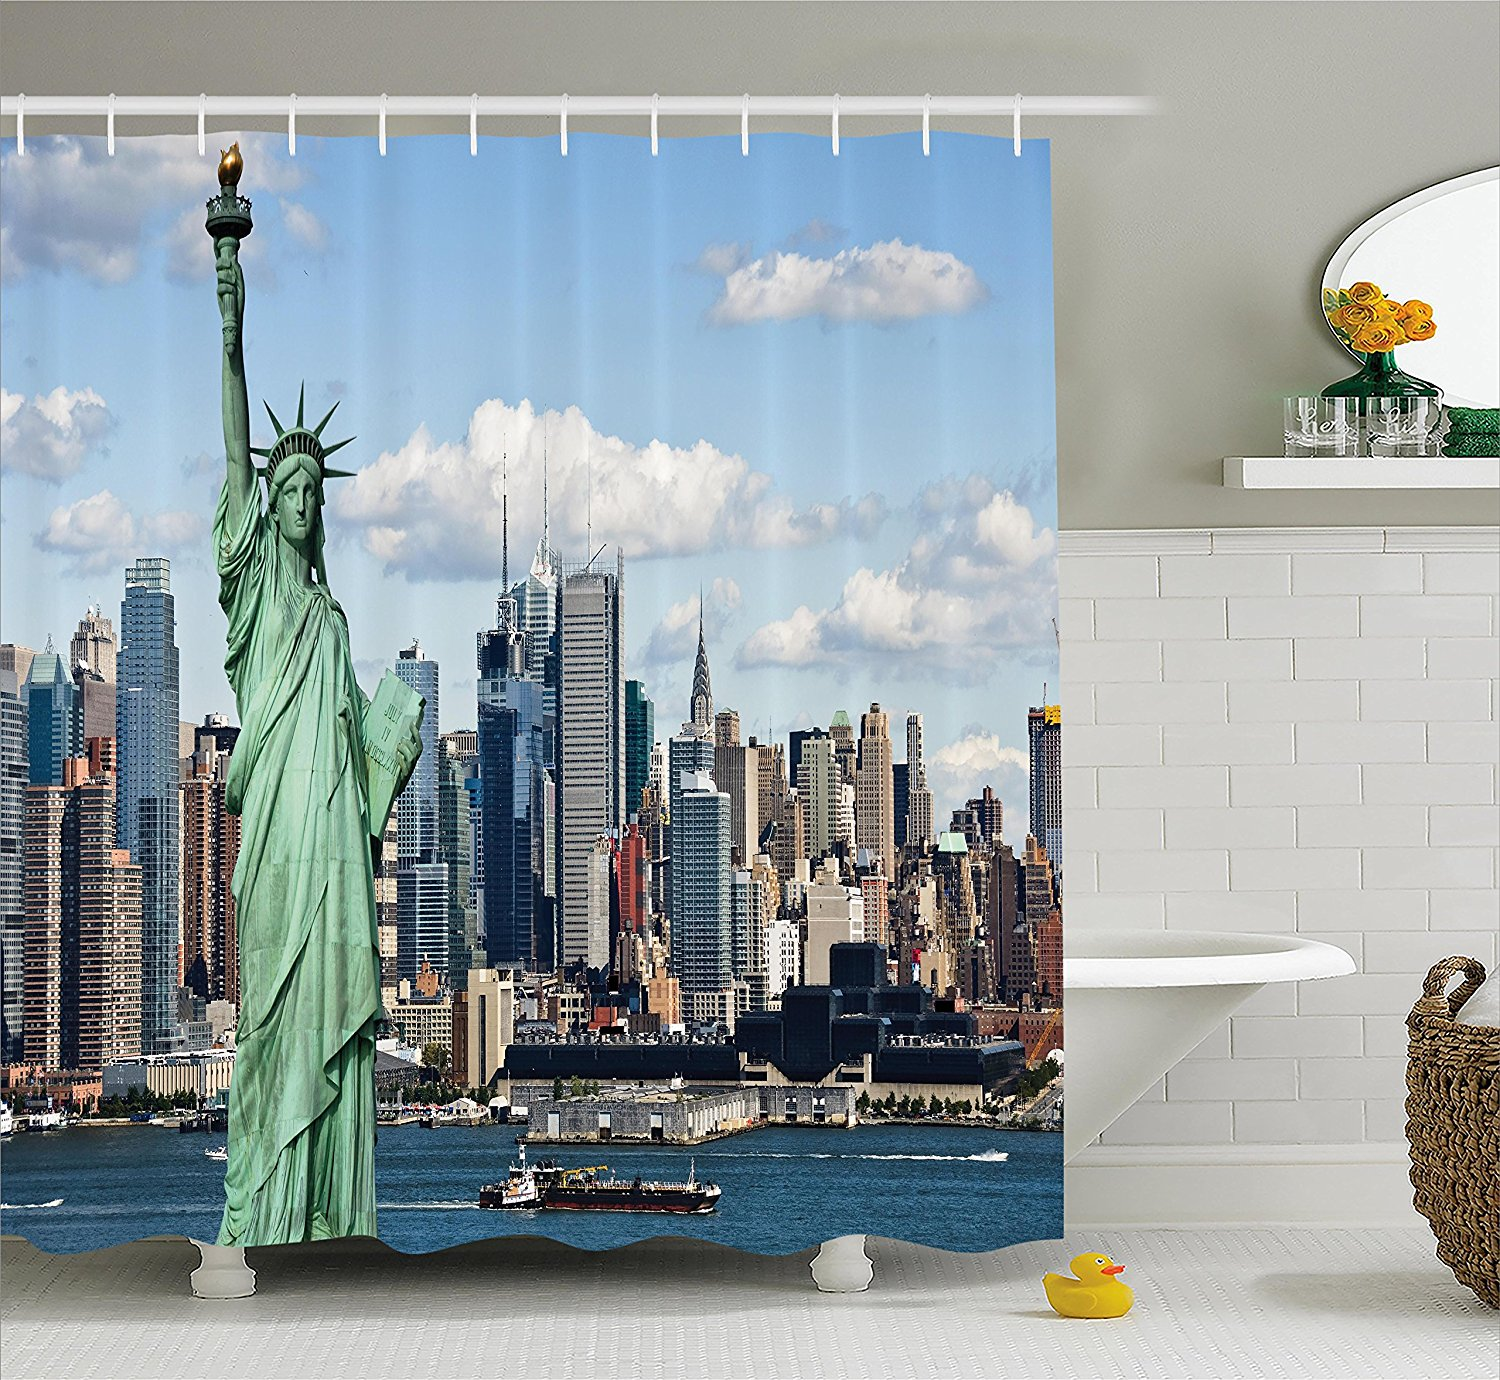 New York Shower Curtain Statue of Liberty in NYC Harbor